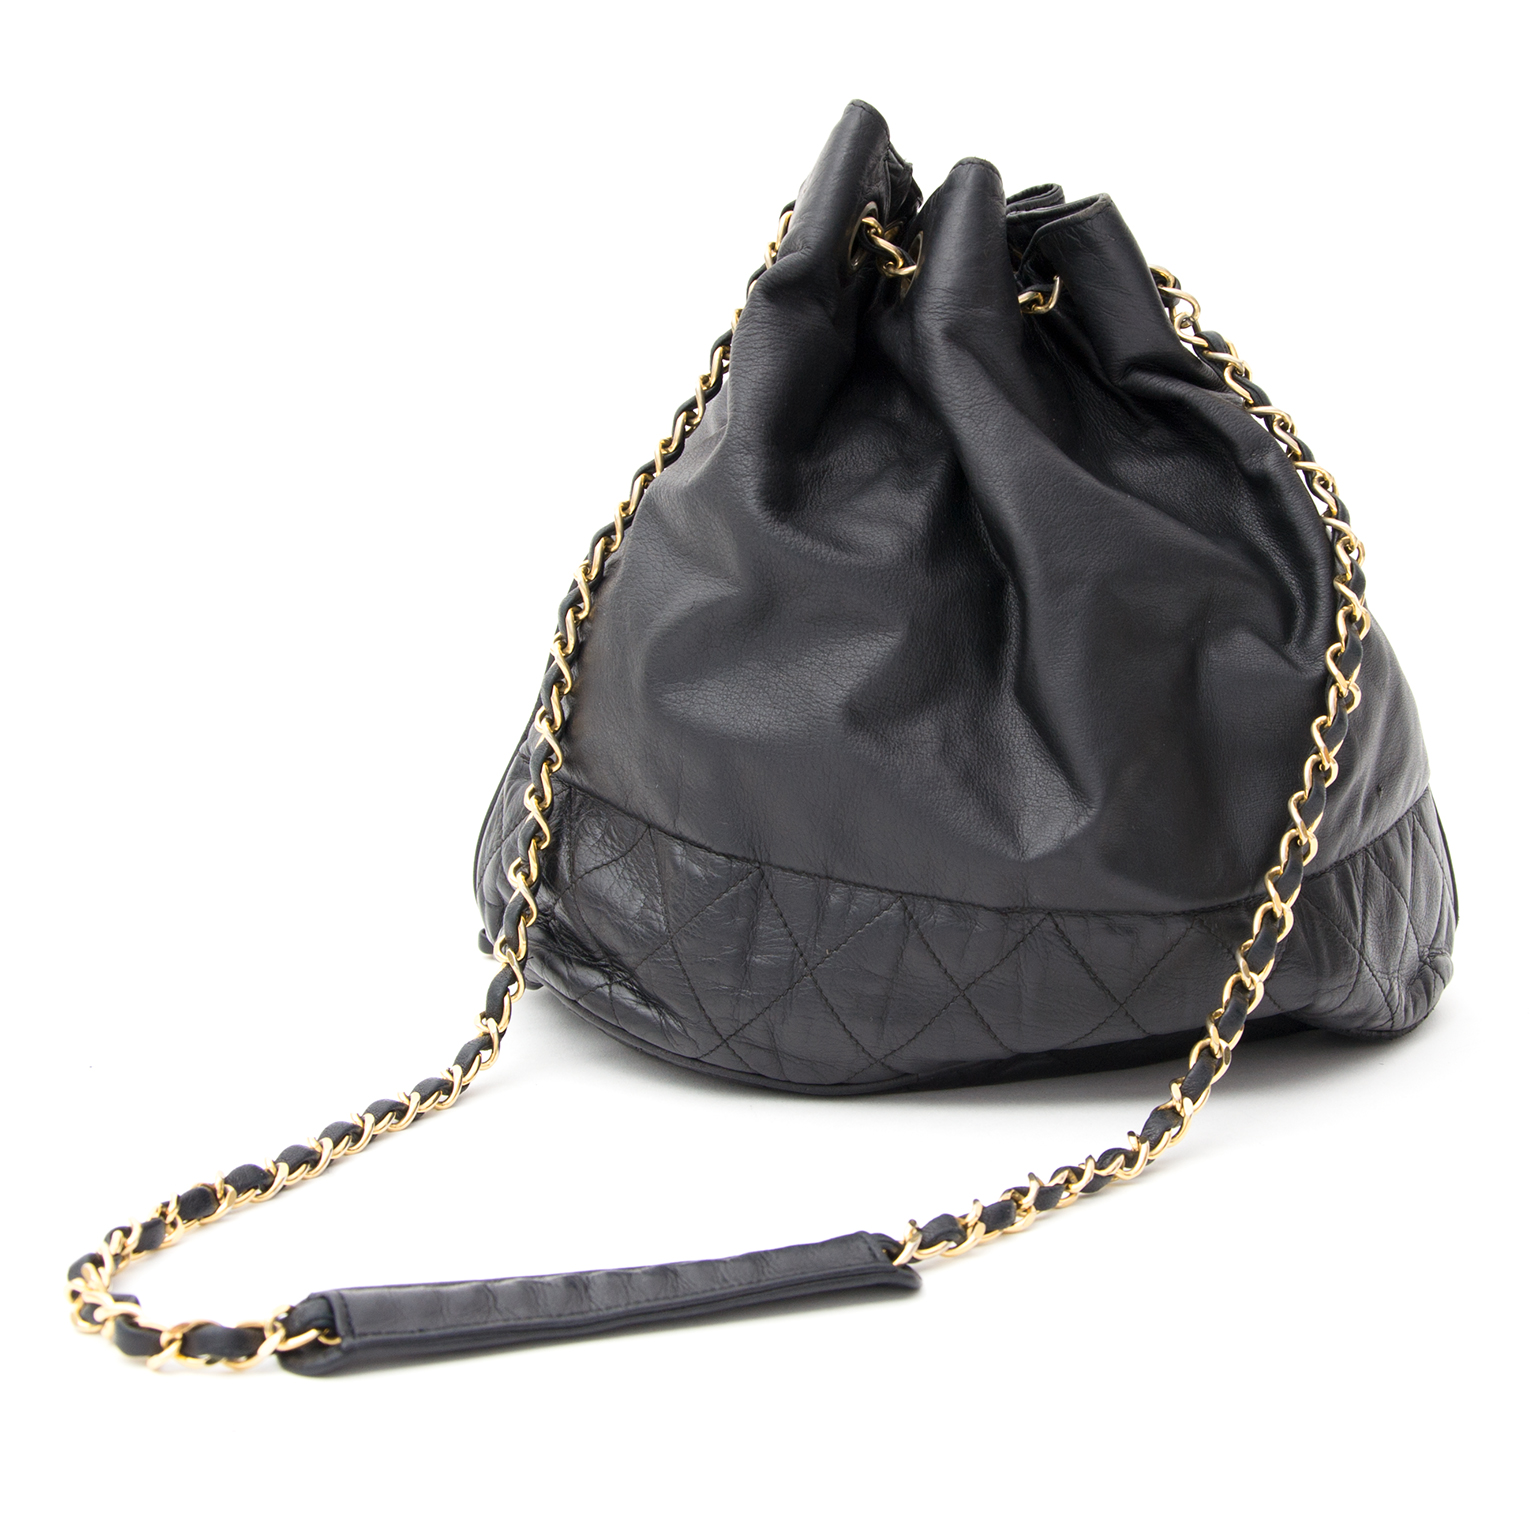 50c42b9ba1b5 ... Chanel Black Bucket Drawstring Bag Labellov for an wide variety of  secondhand vintage Hermes bags for